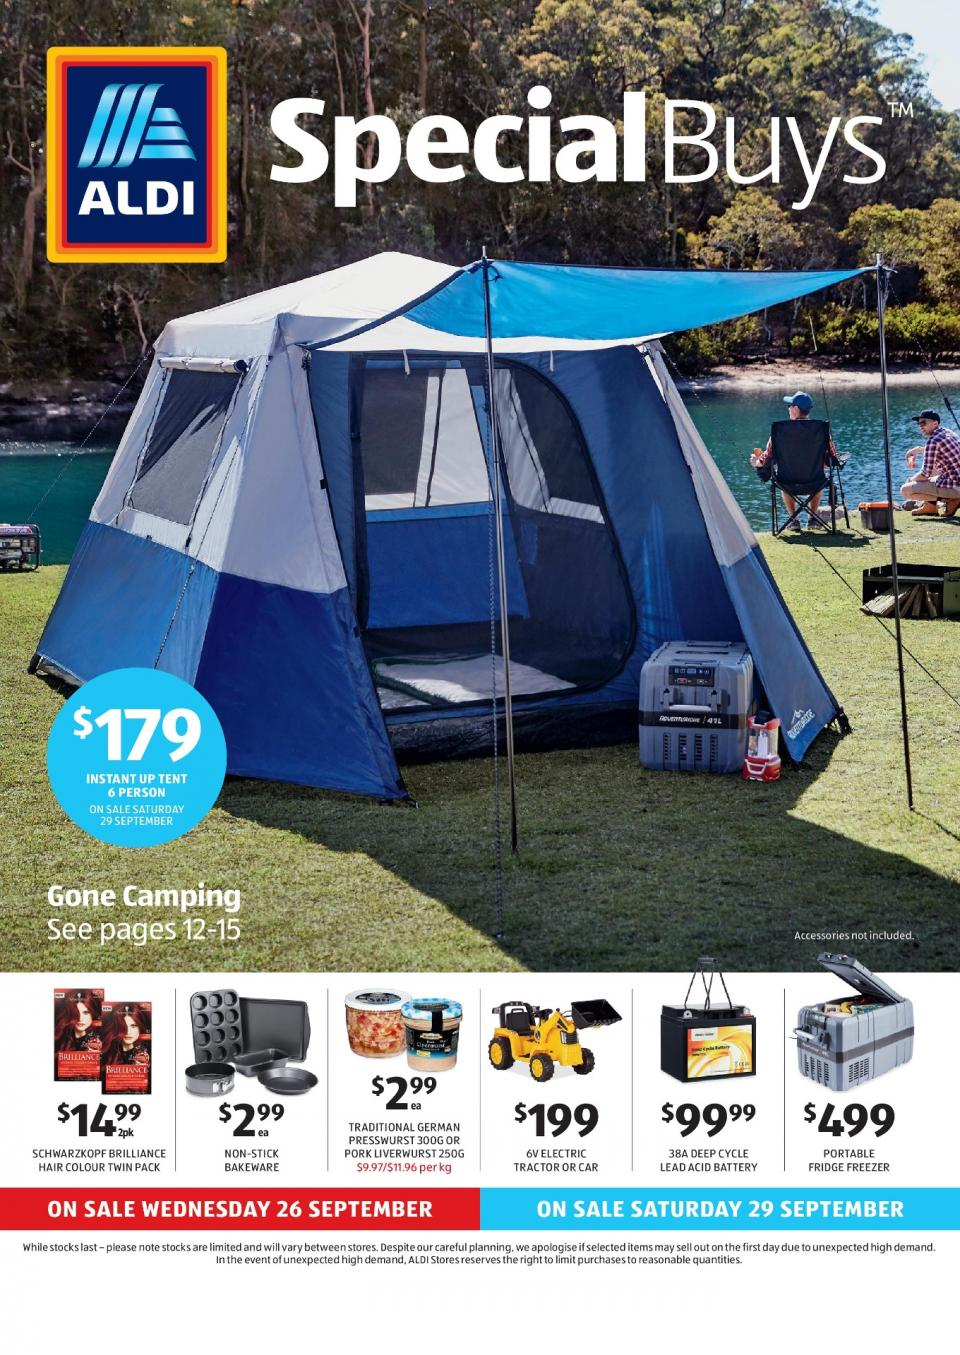 aldi special buys week 39 2018. Black Bedroom Furniture Sets. Home Design Ideas